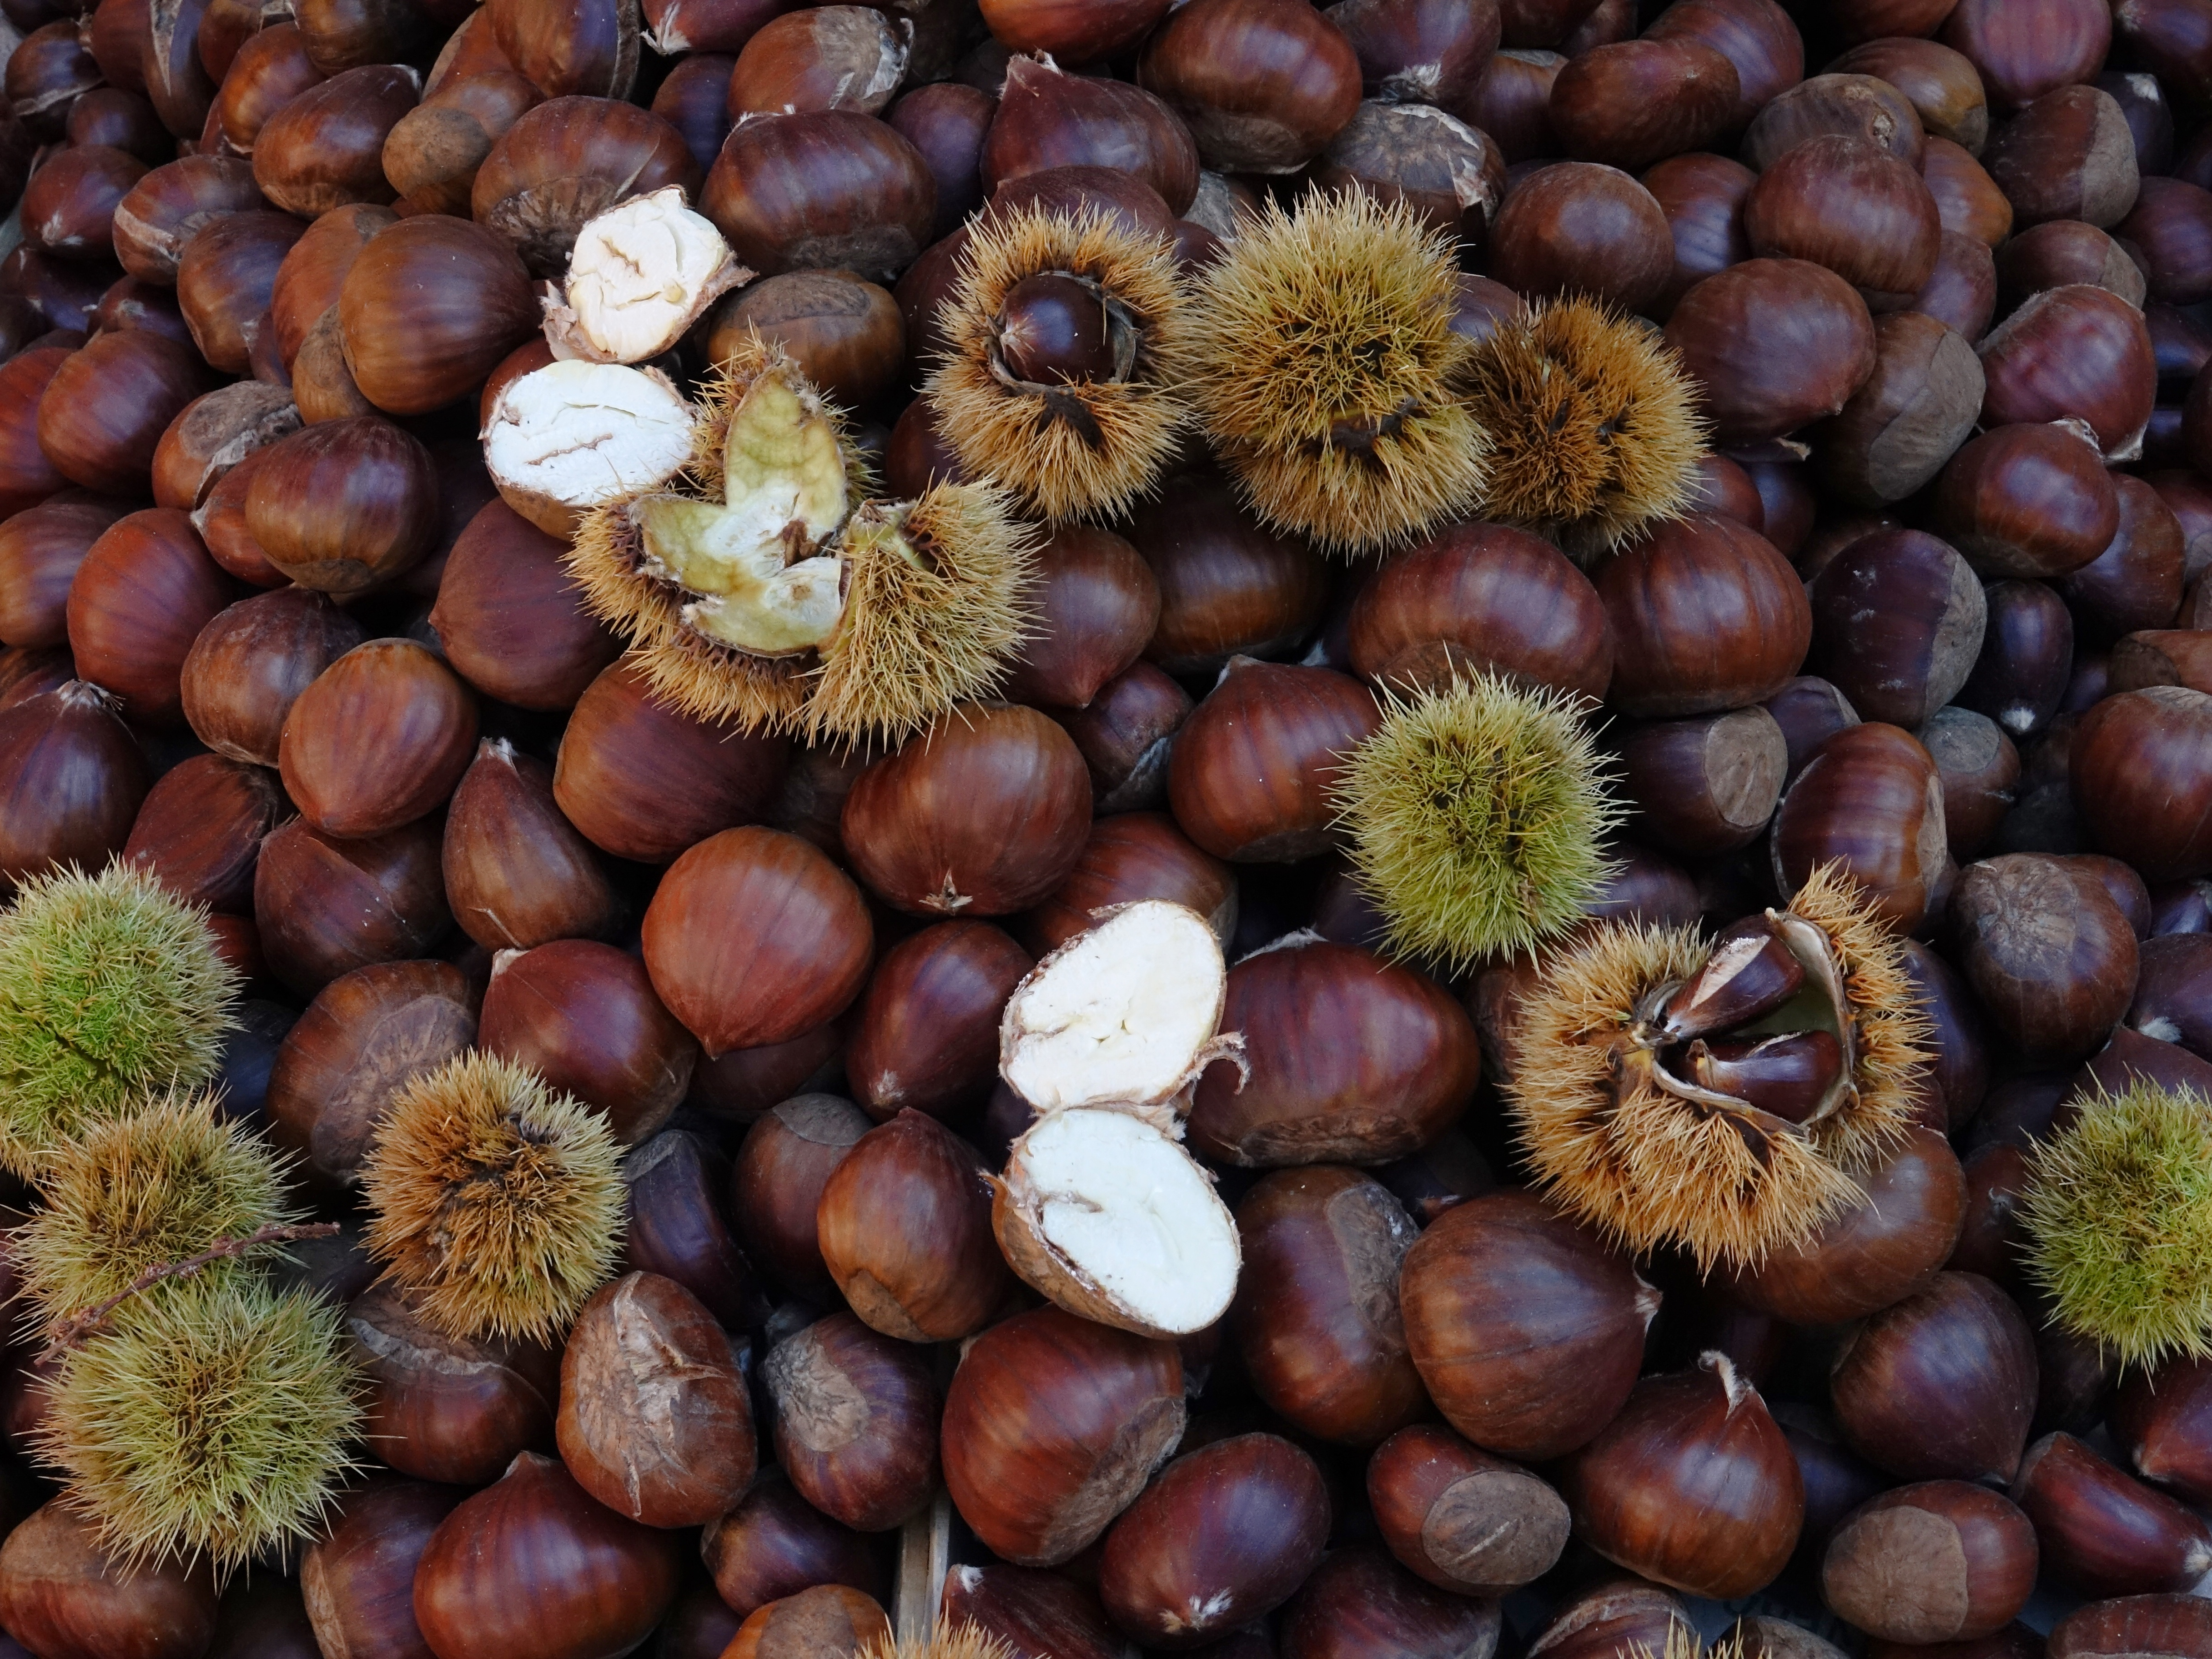 Delicious chestnuts, we ate these daily at the roasting stands which came alive every evening